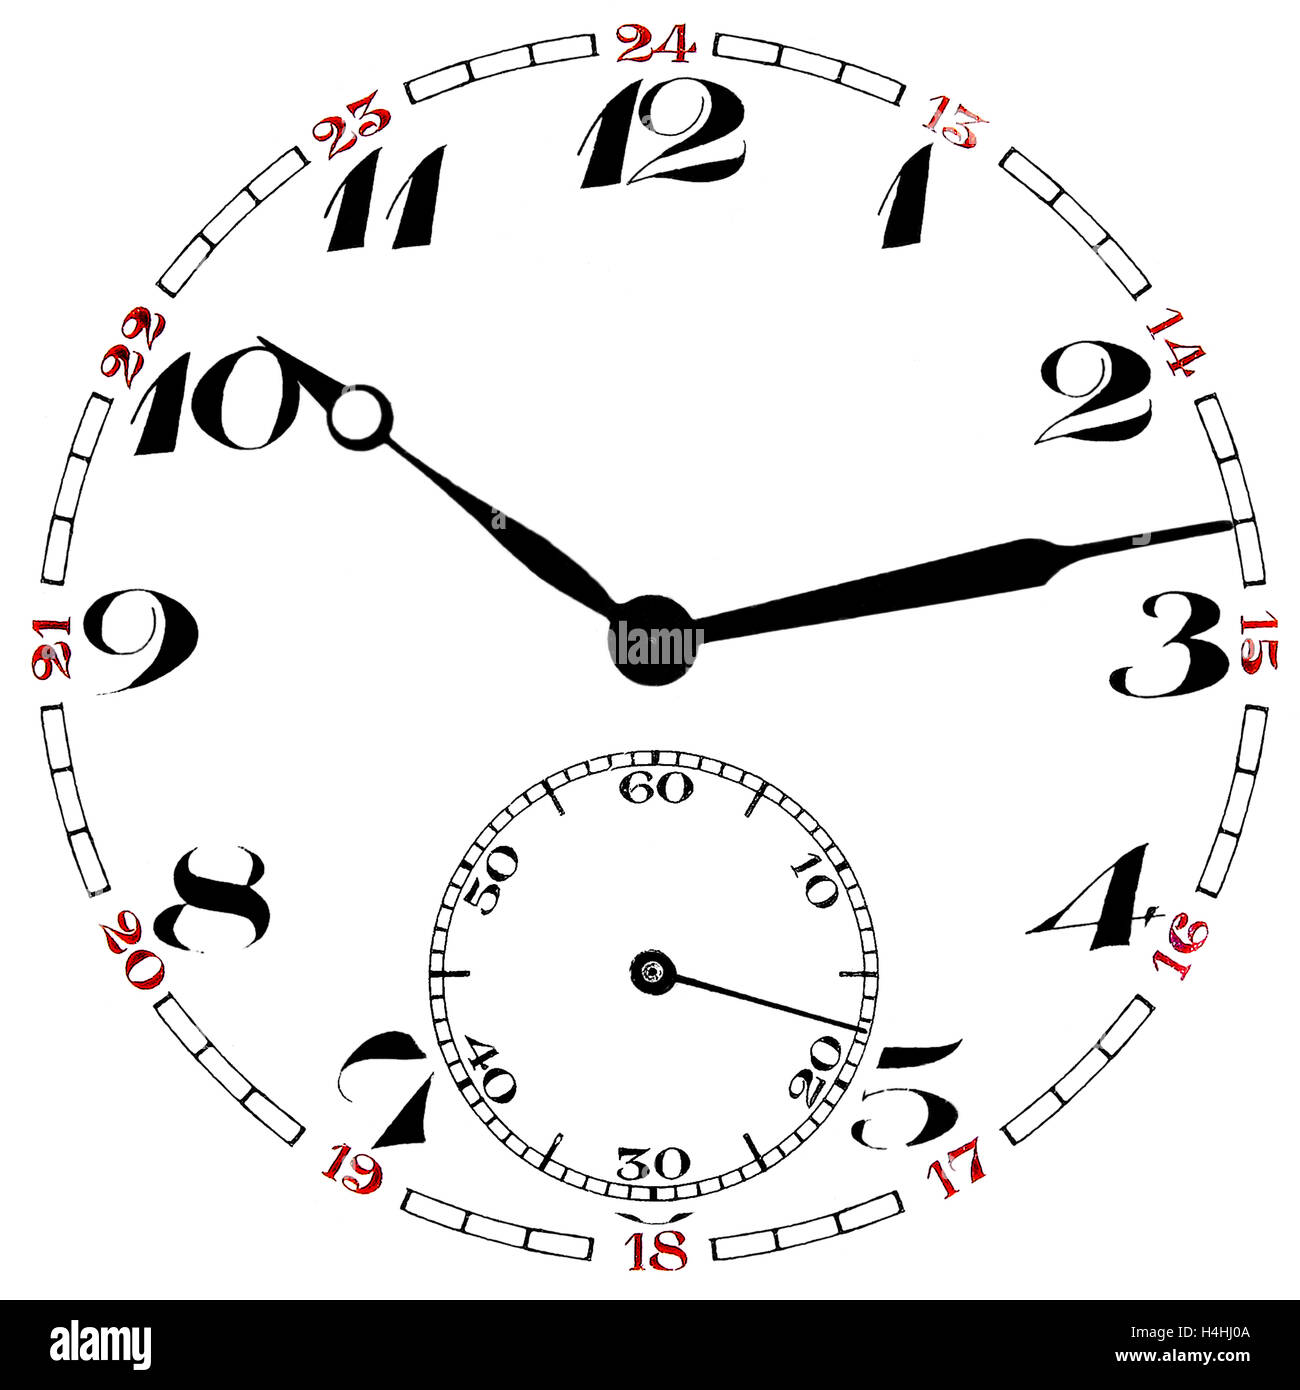 Pocket watch clock face numbers and indicators isolated on white background - Stock Image